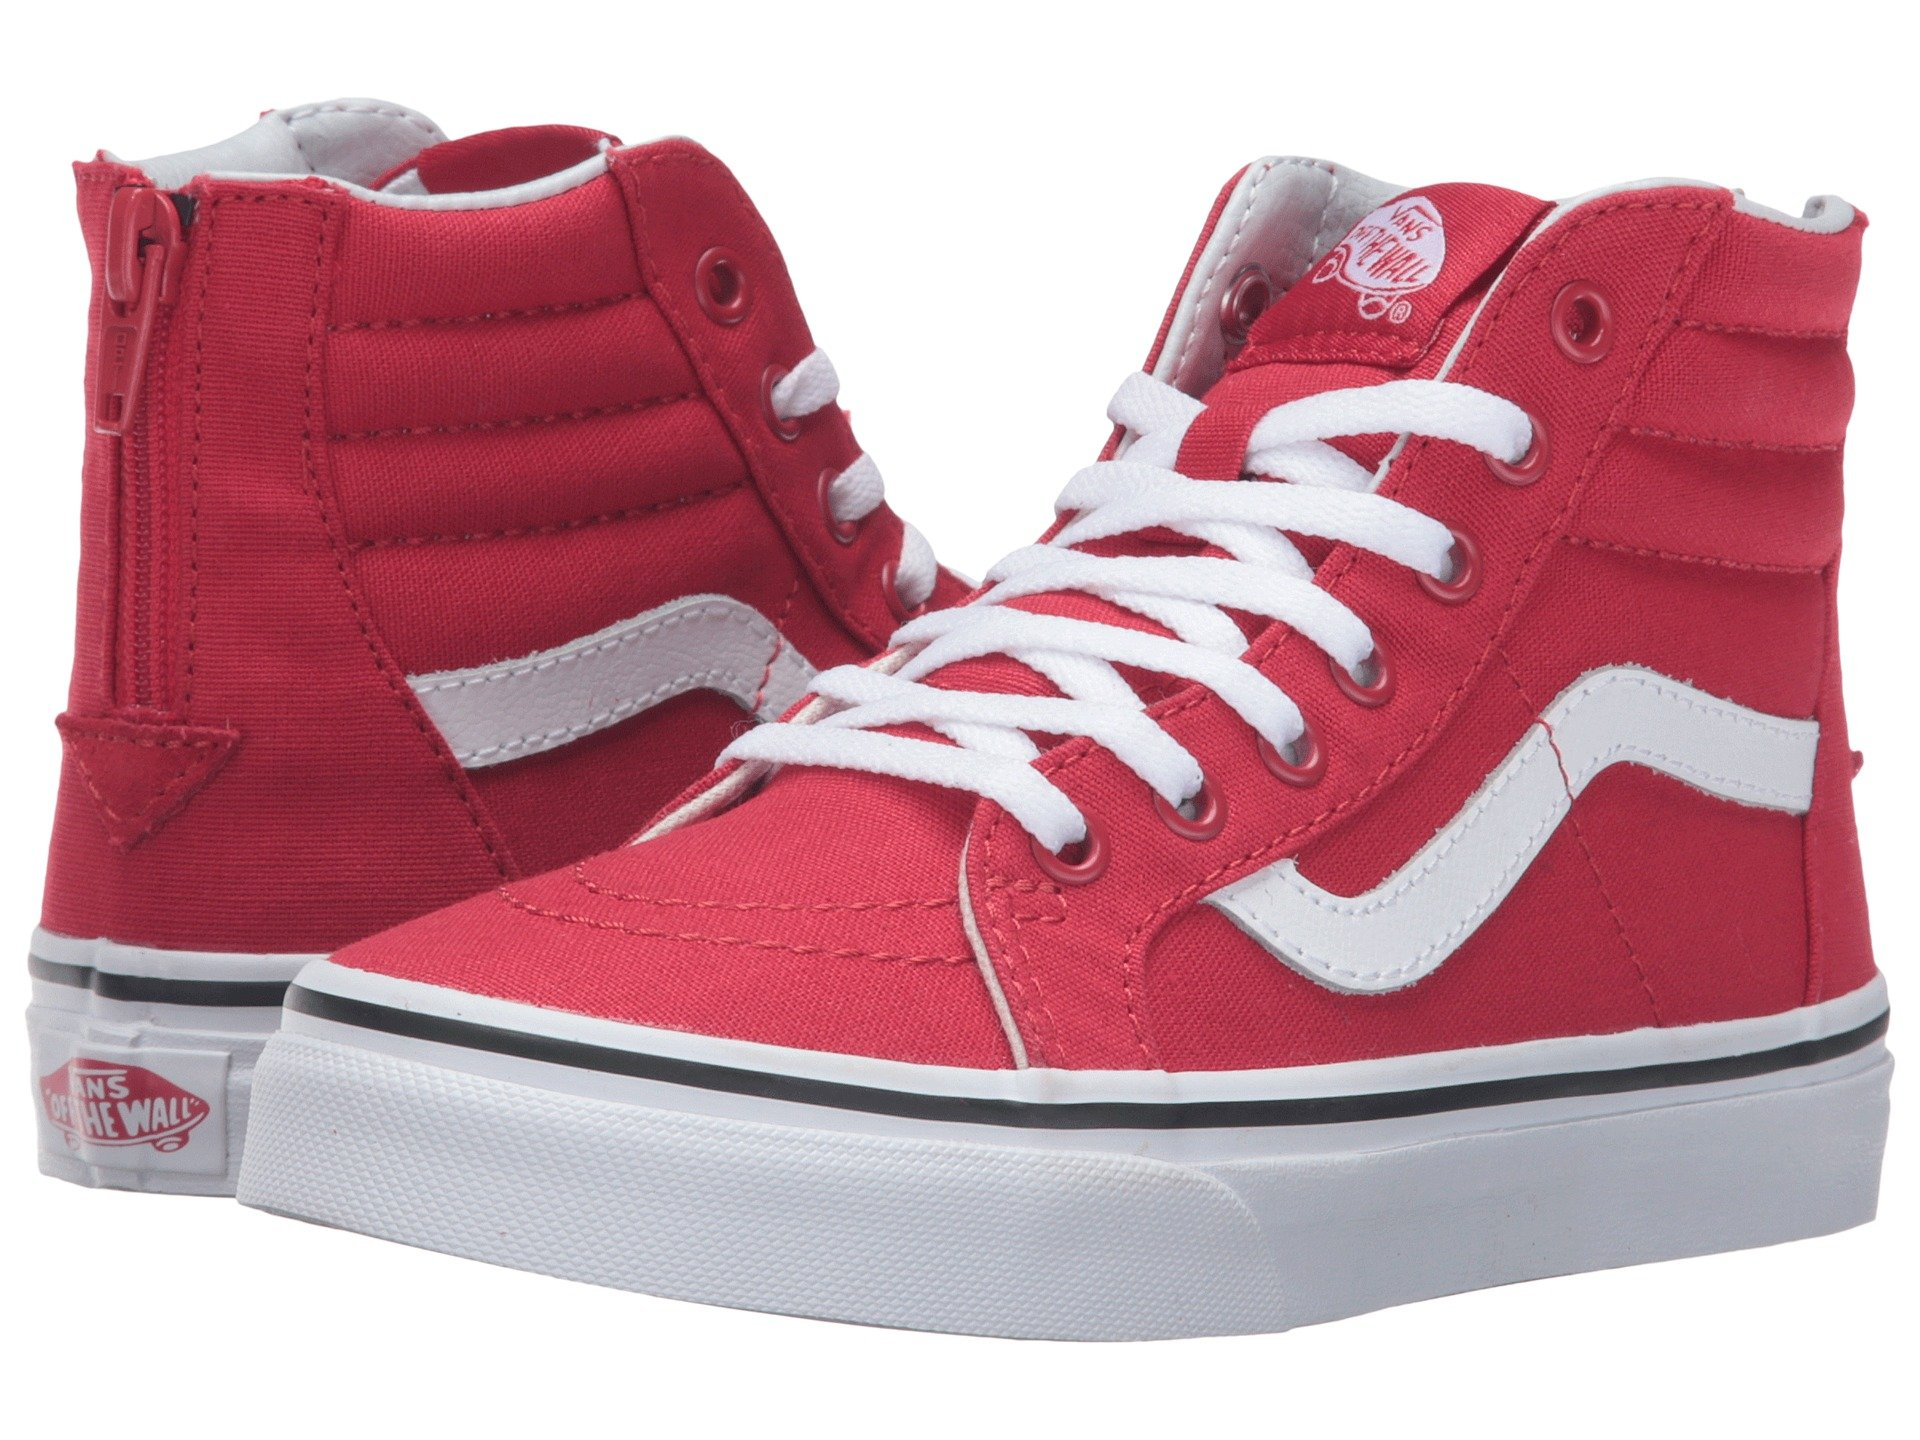 Cool gifts for tween boys (and girls): Vans Kids Sk8 High tops